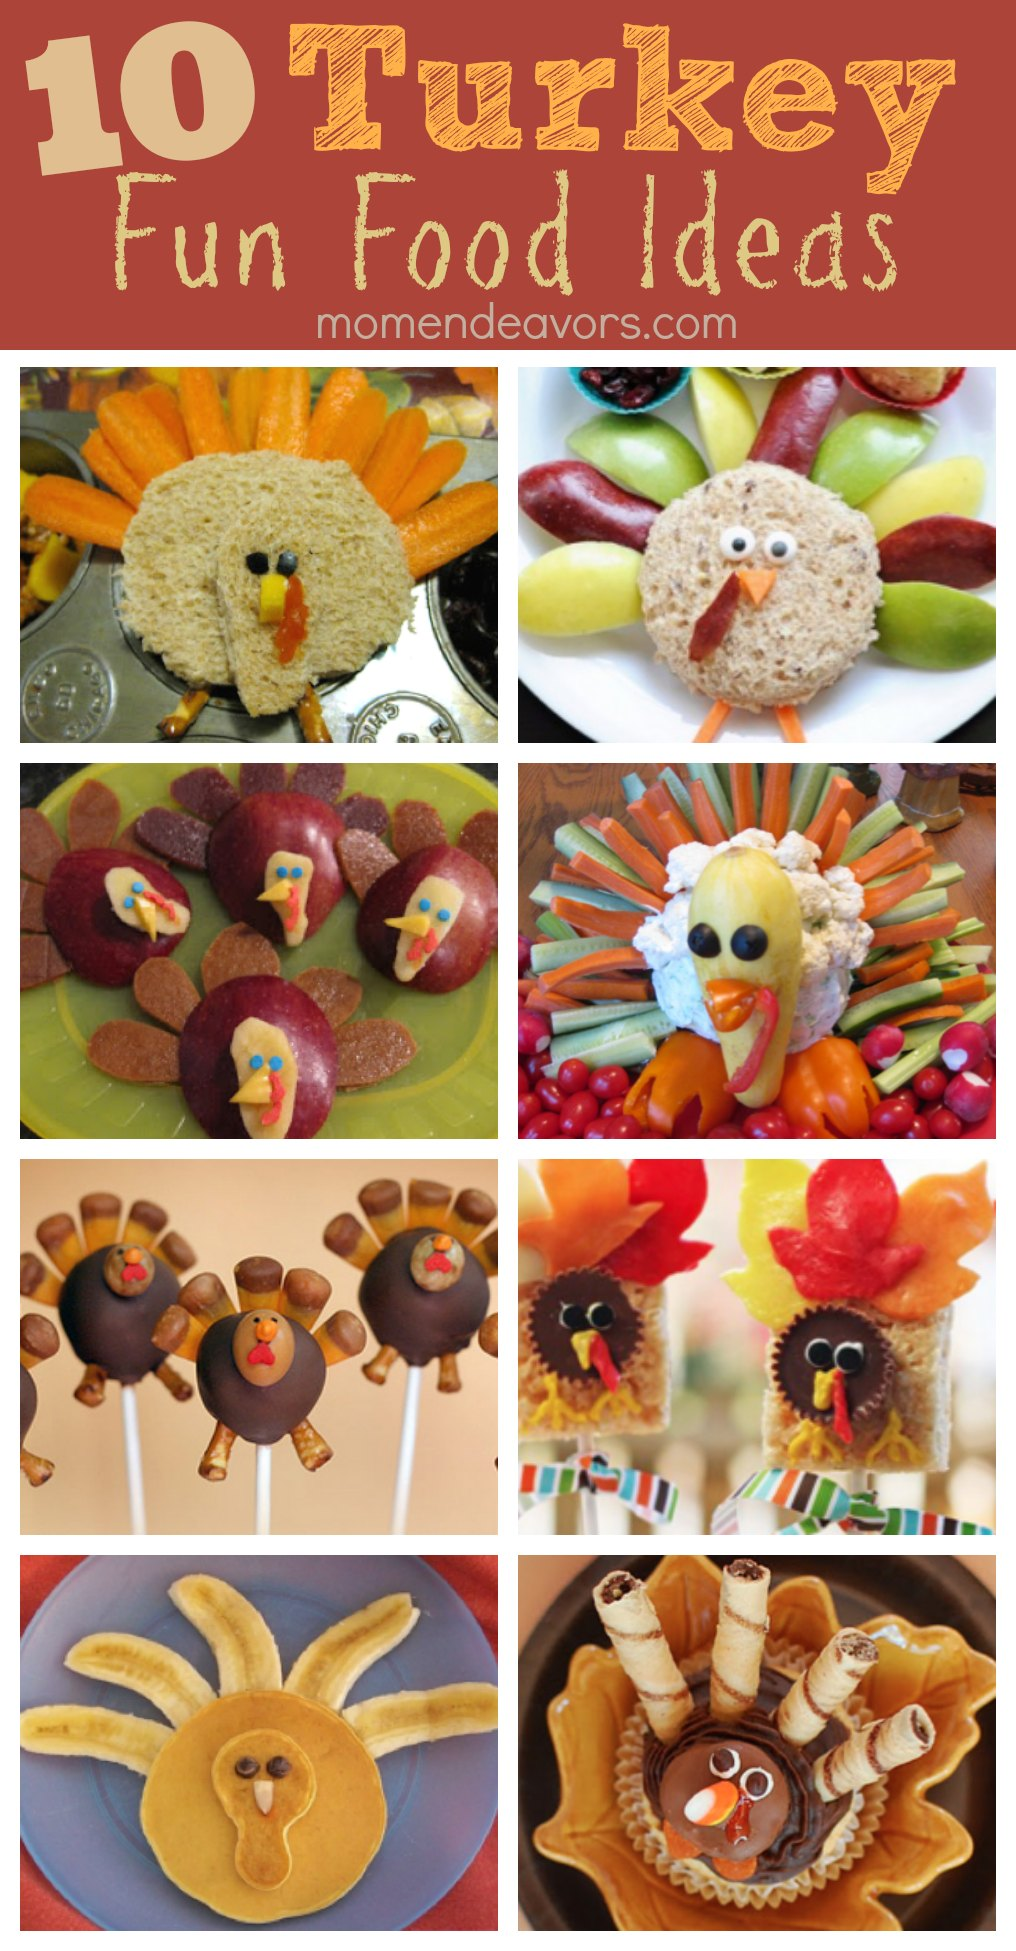 10 Turkey Fun Food Ideas